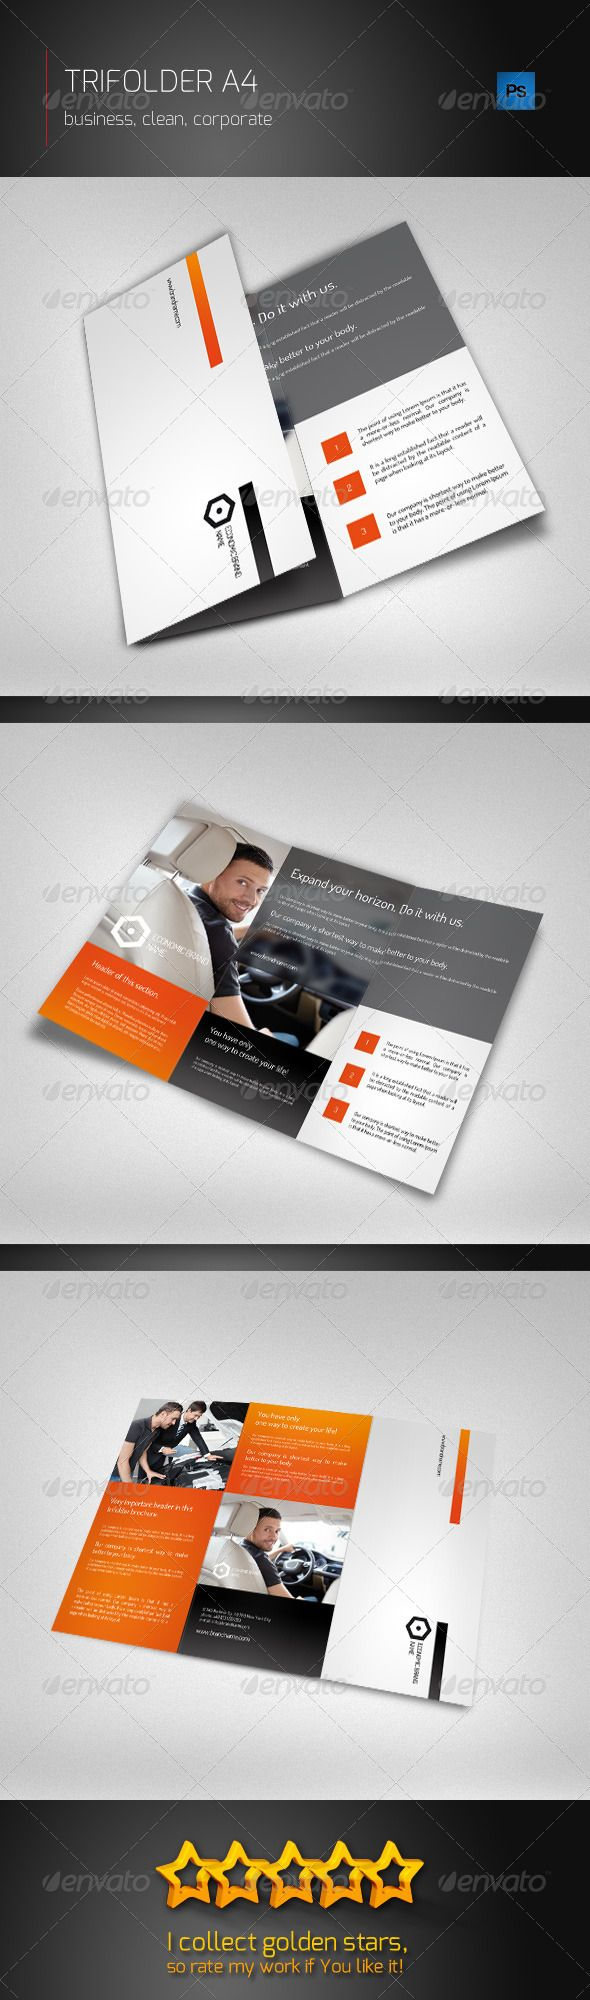 Trifolder Business Brochure - Corporate Brochures